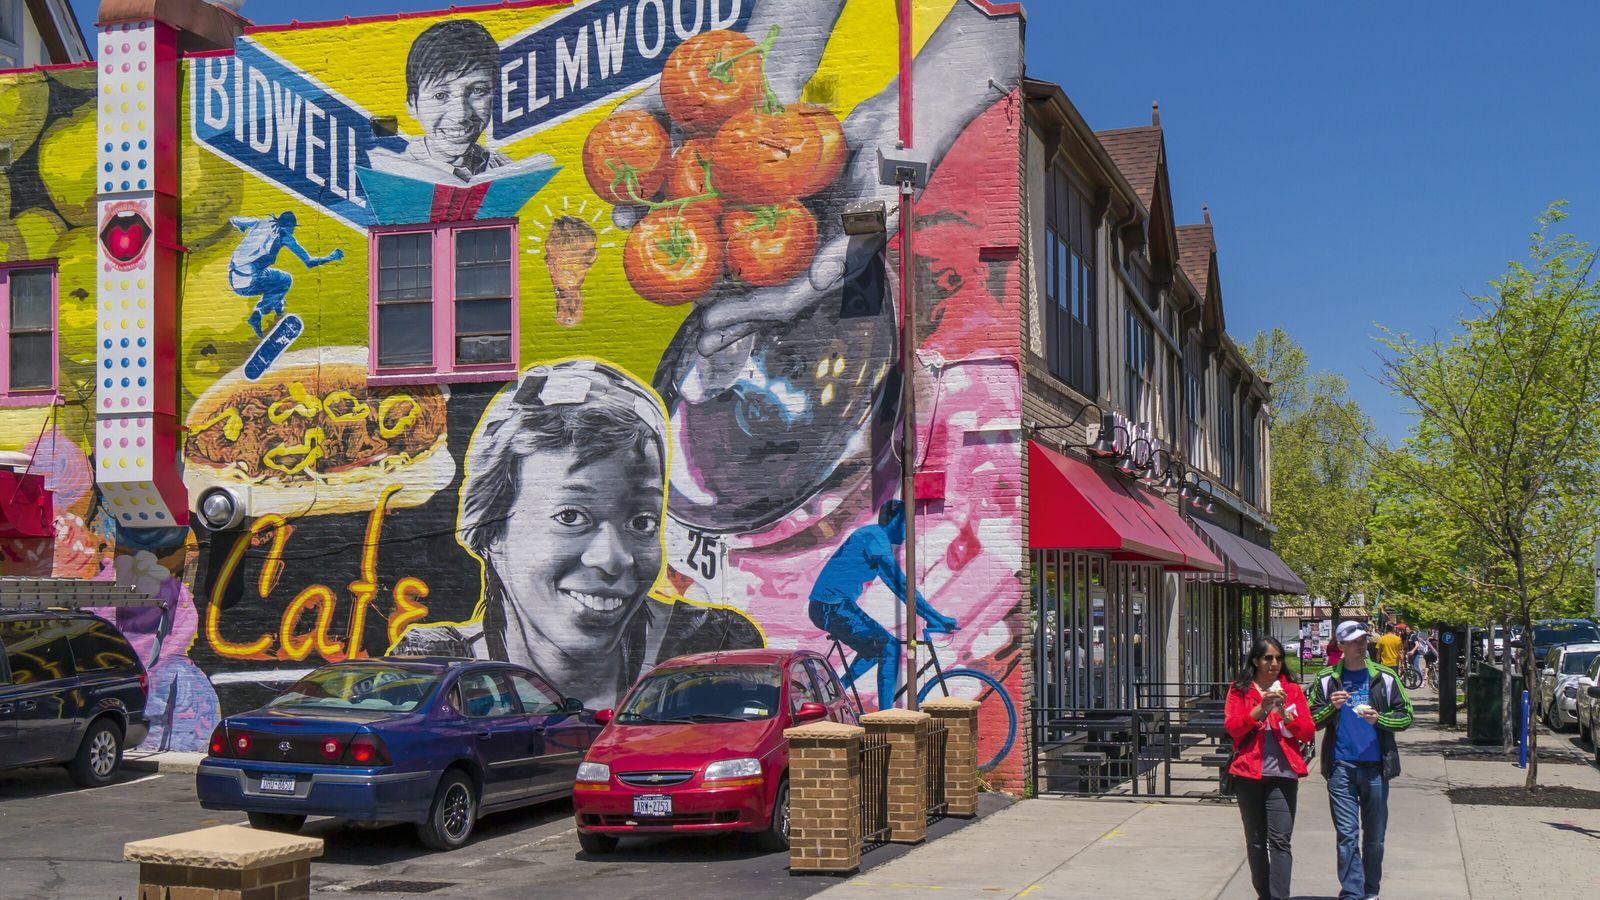 A colourful mural on Elmwood Avenue.